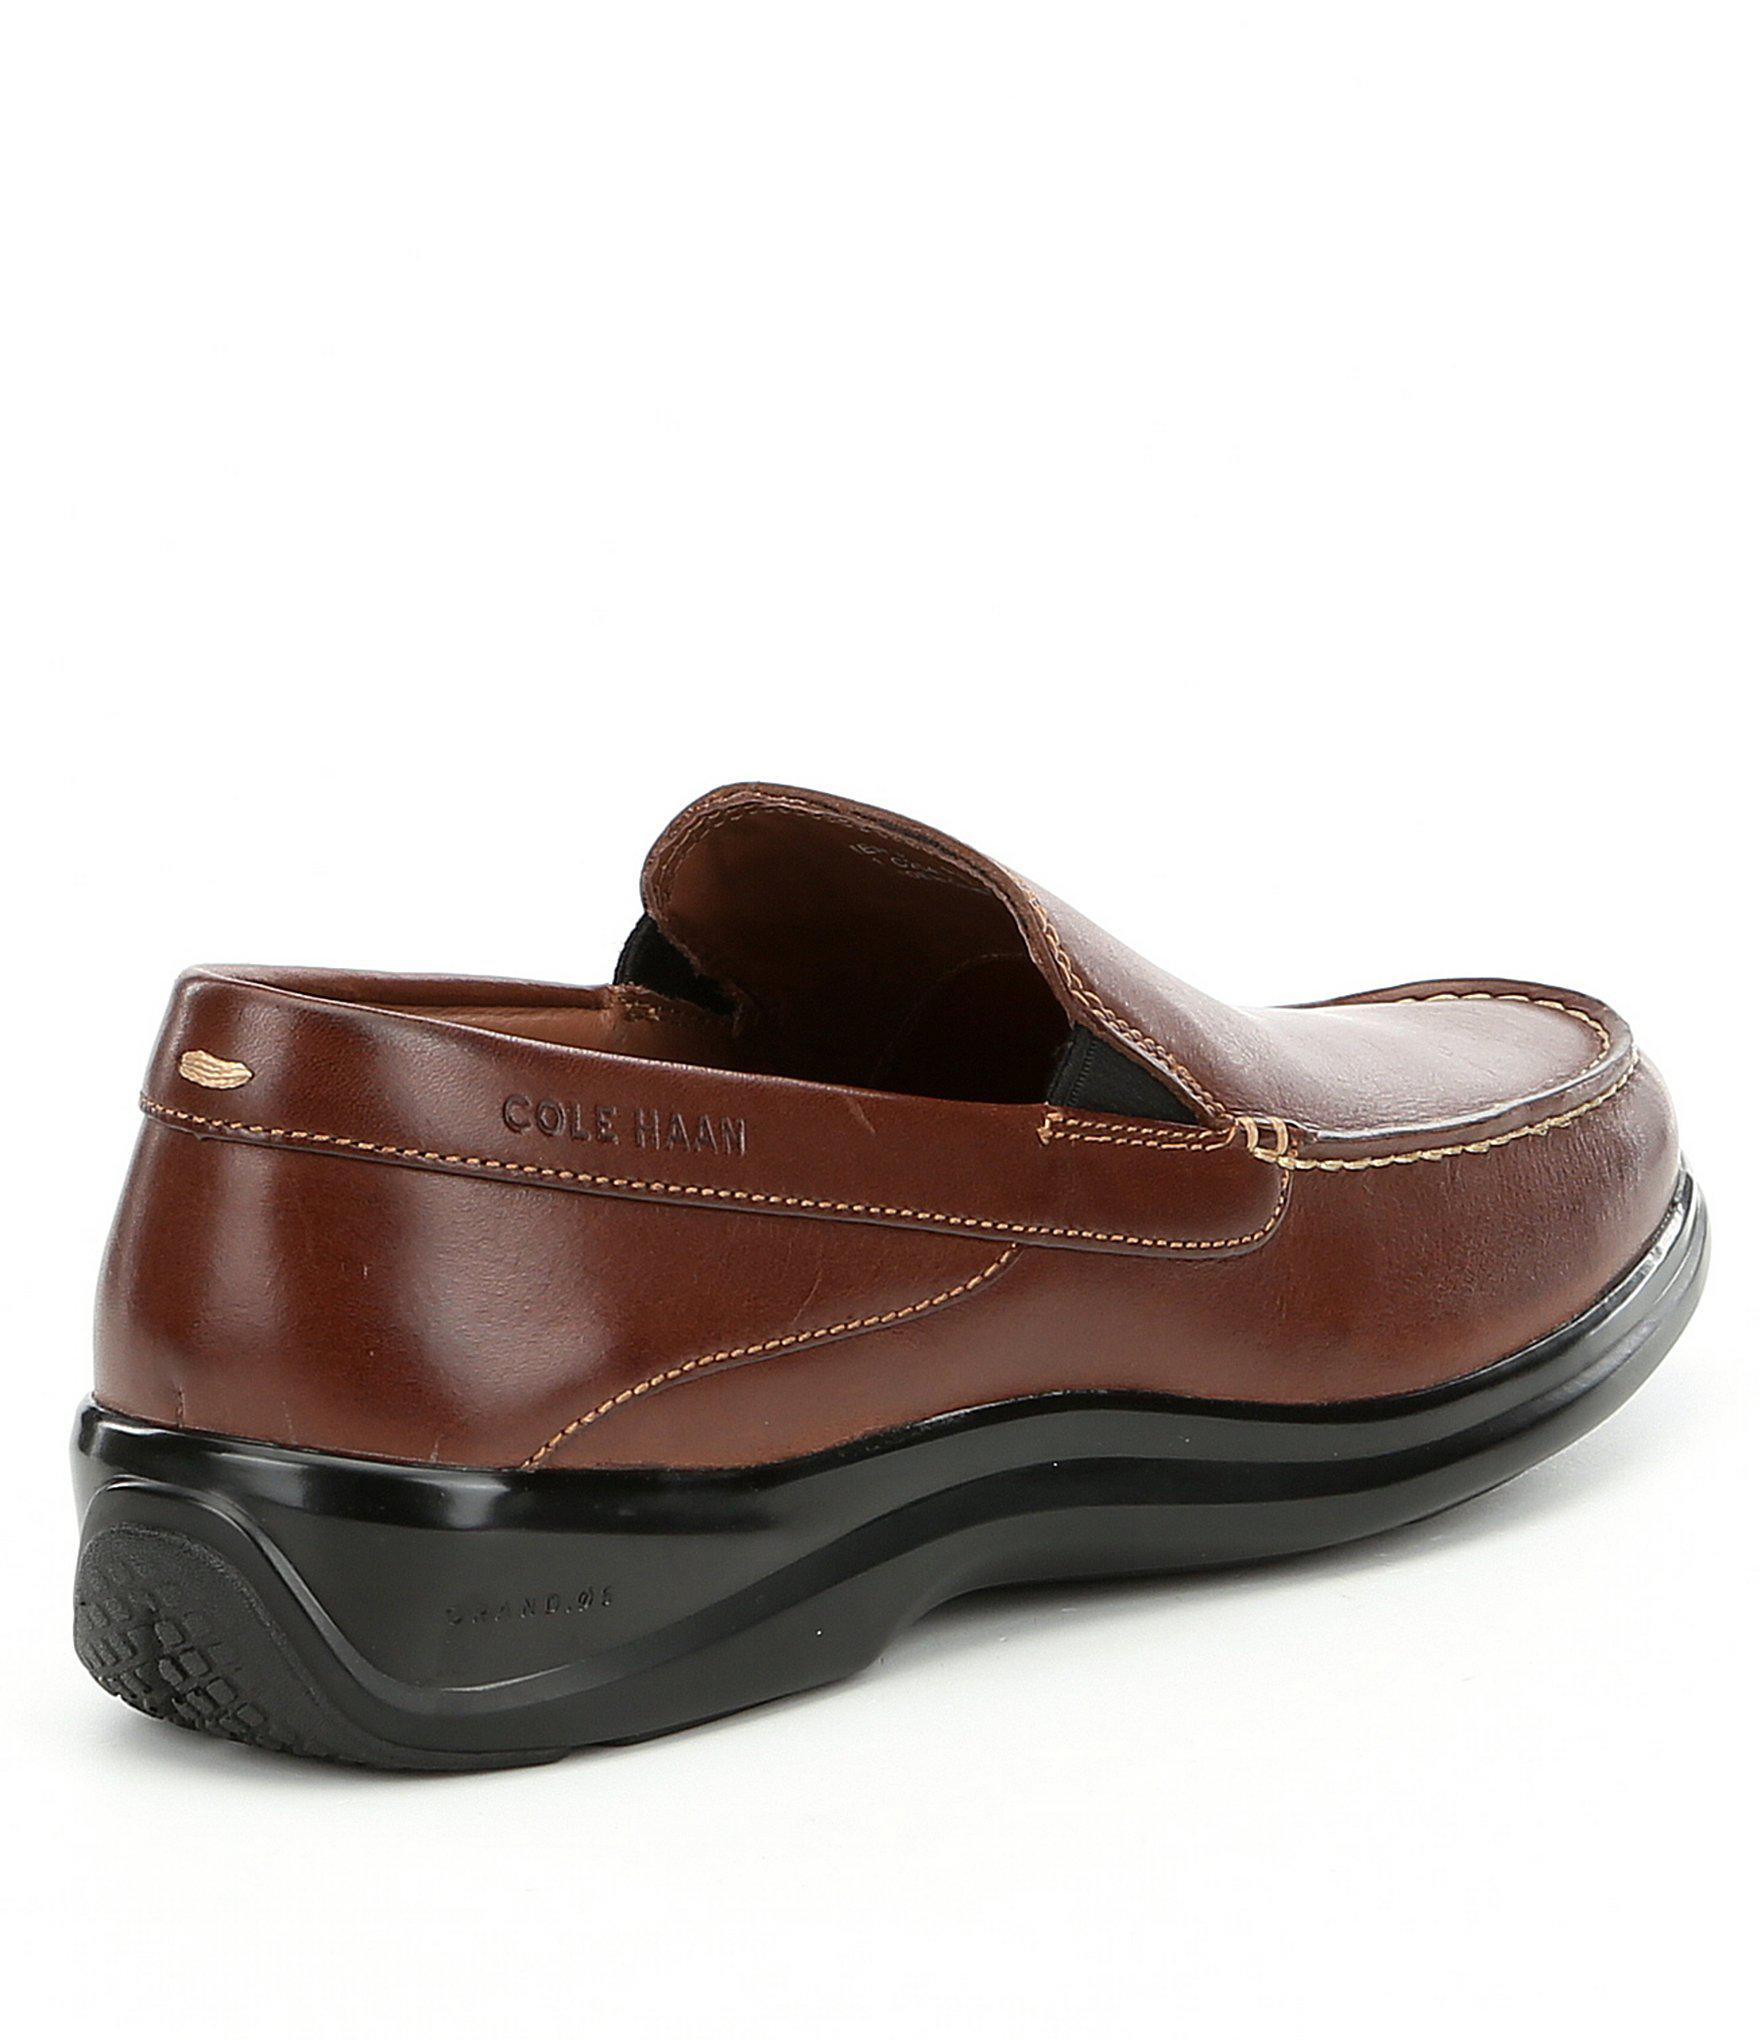 7d01f3ad07a Lyst - Cole Haan Men s Santa Barbara Twin Gore Ii Loafers in Brown ...